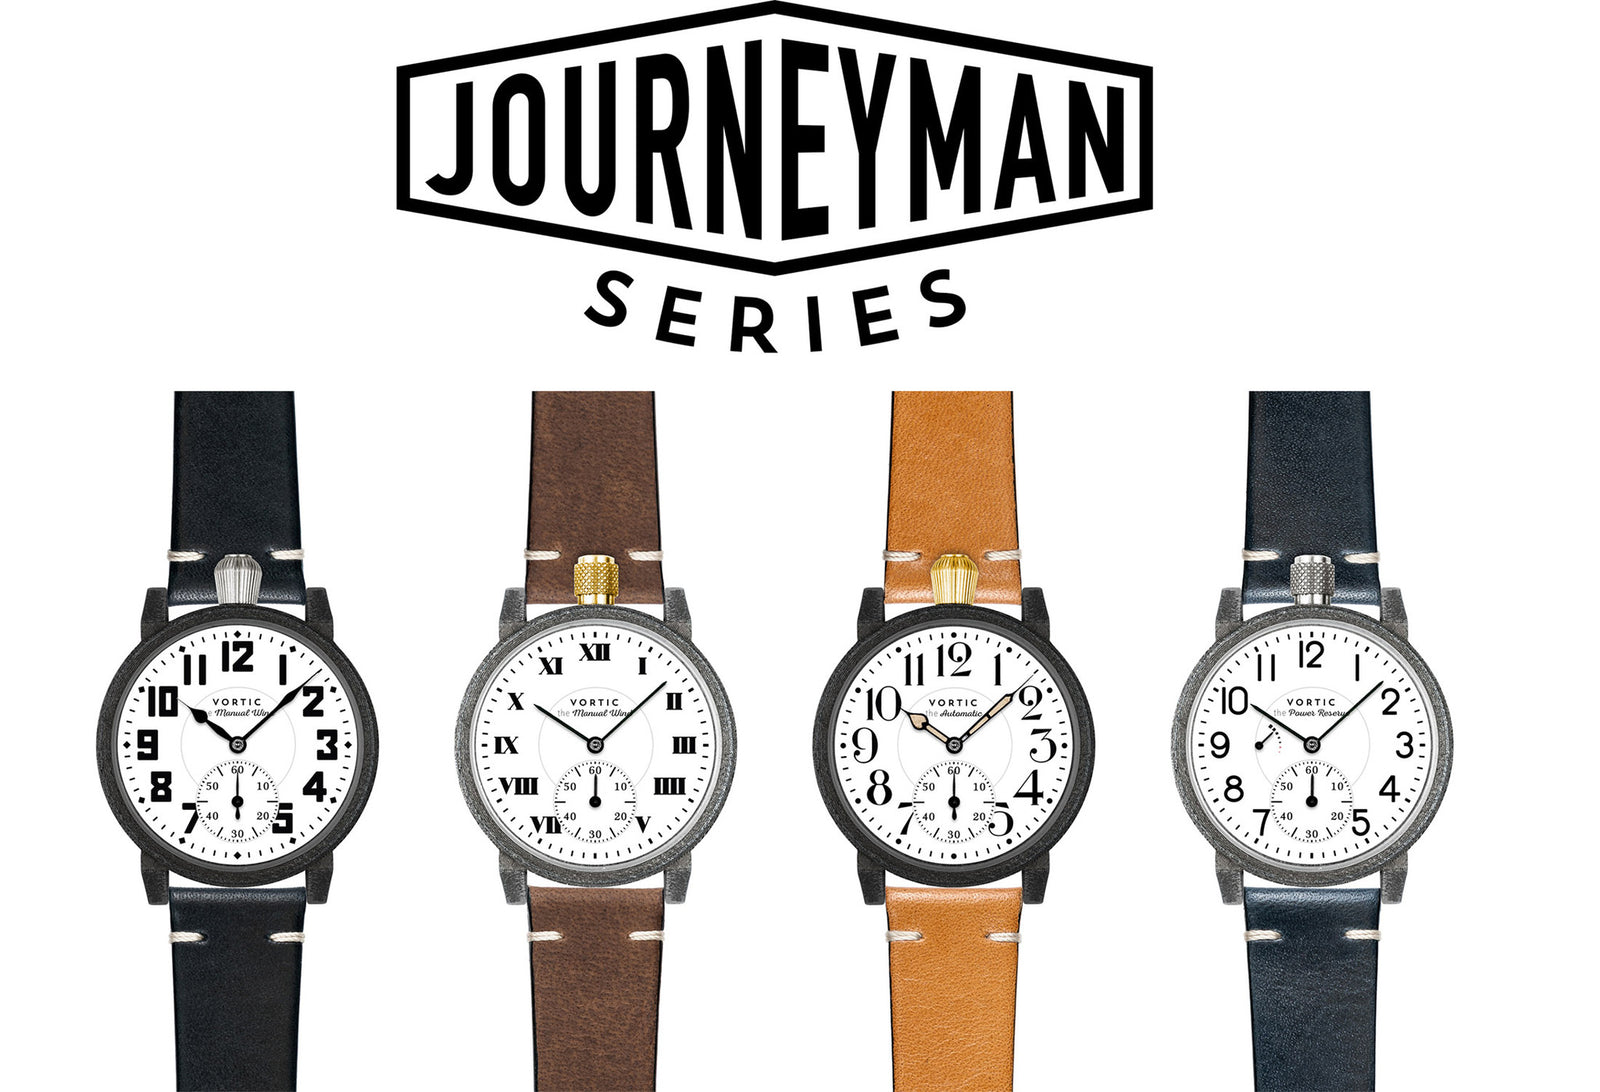 Journeyman Edition